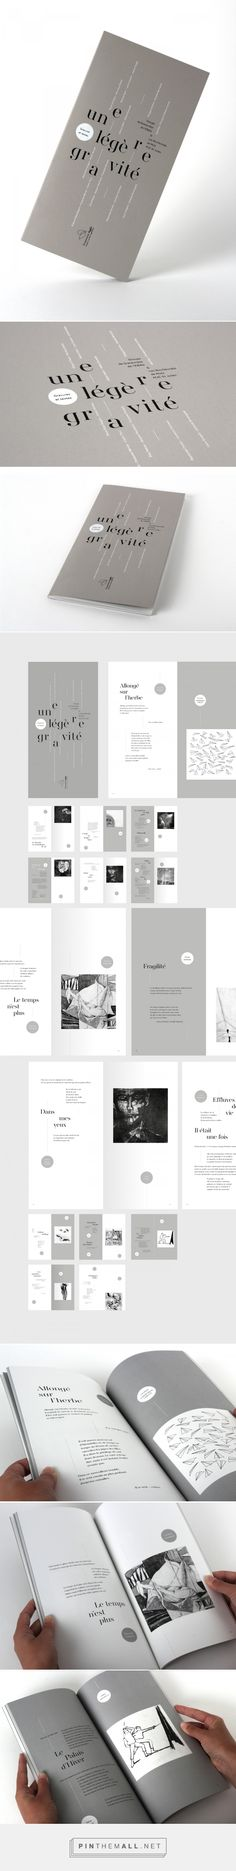 A slight gravity - Editorial Design by Graphéine